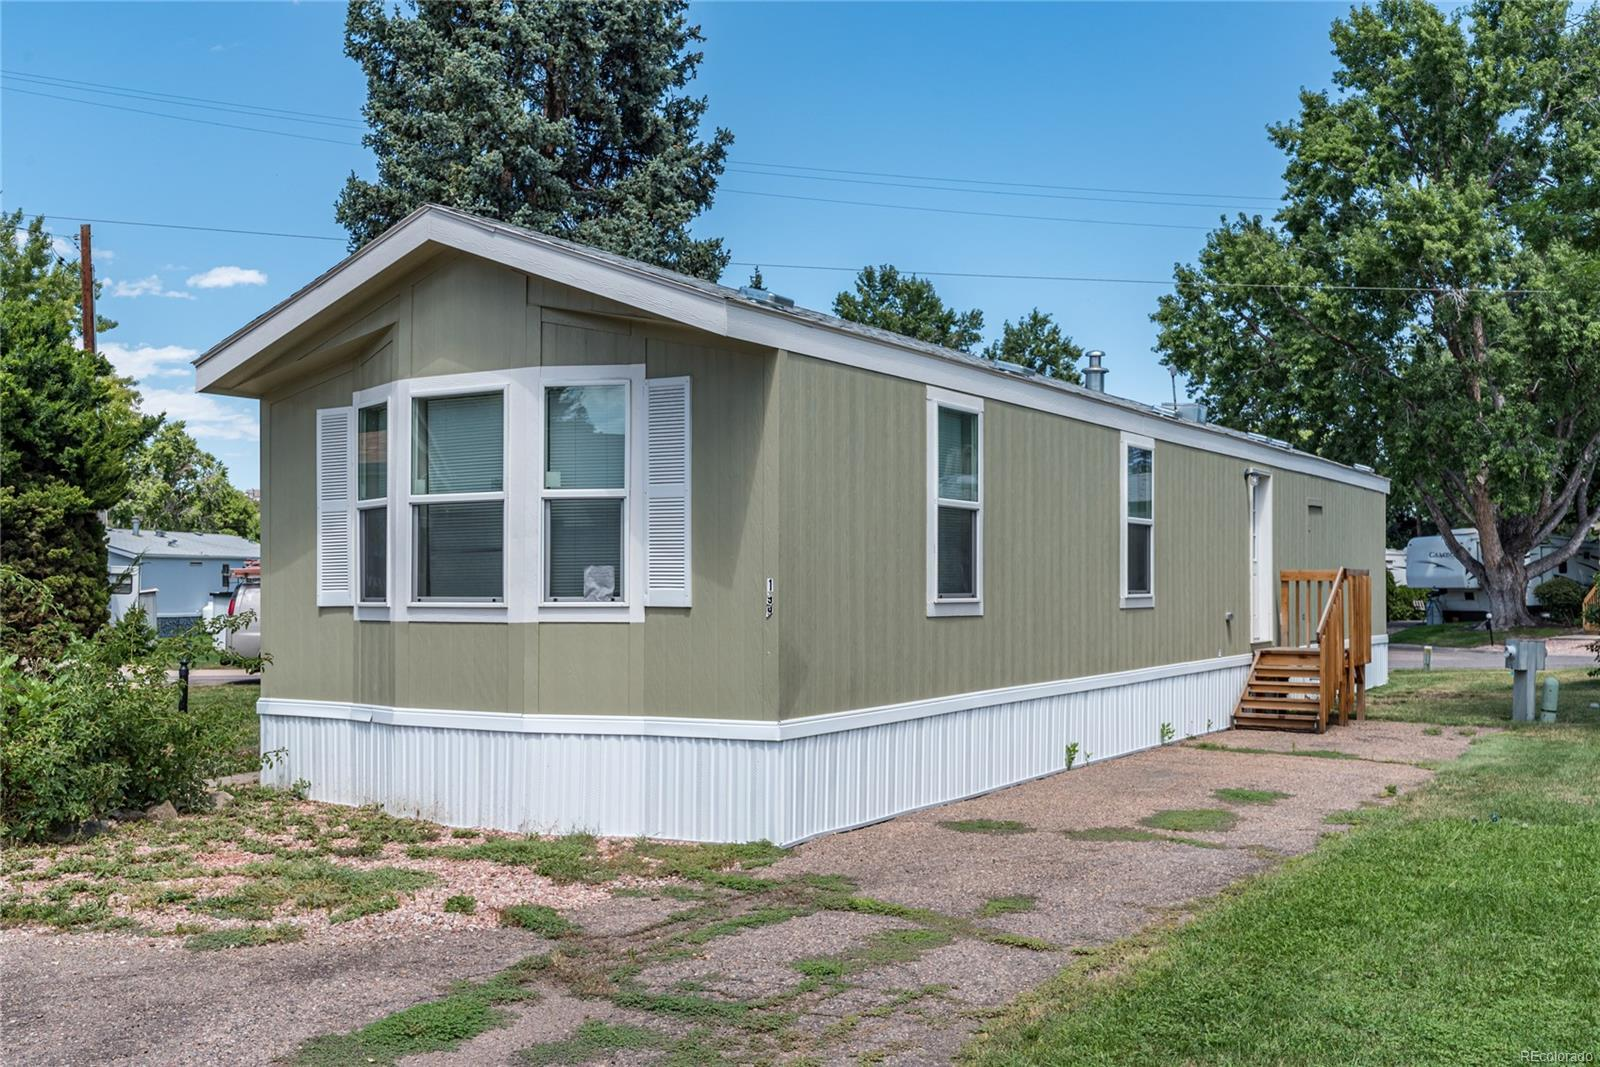 townhomes in denver colorado, apartments in denver colorado, motels in denver colorado, on mobile home parks in denver colorado